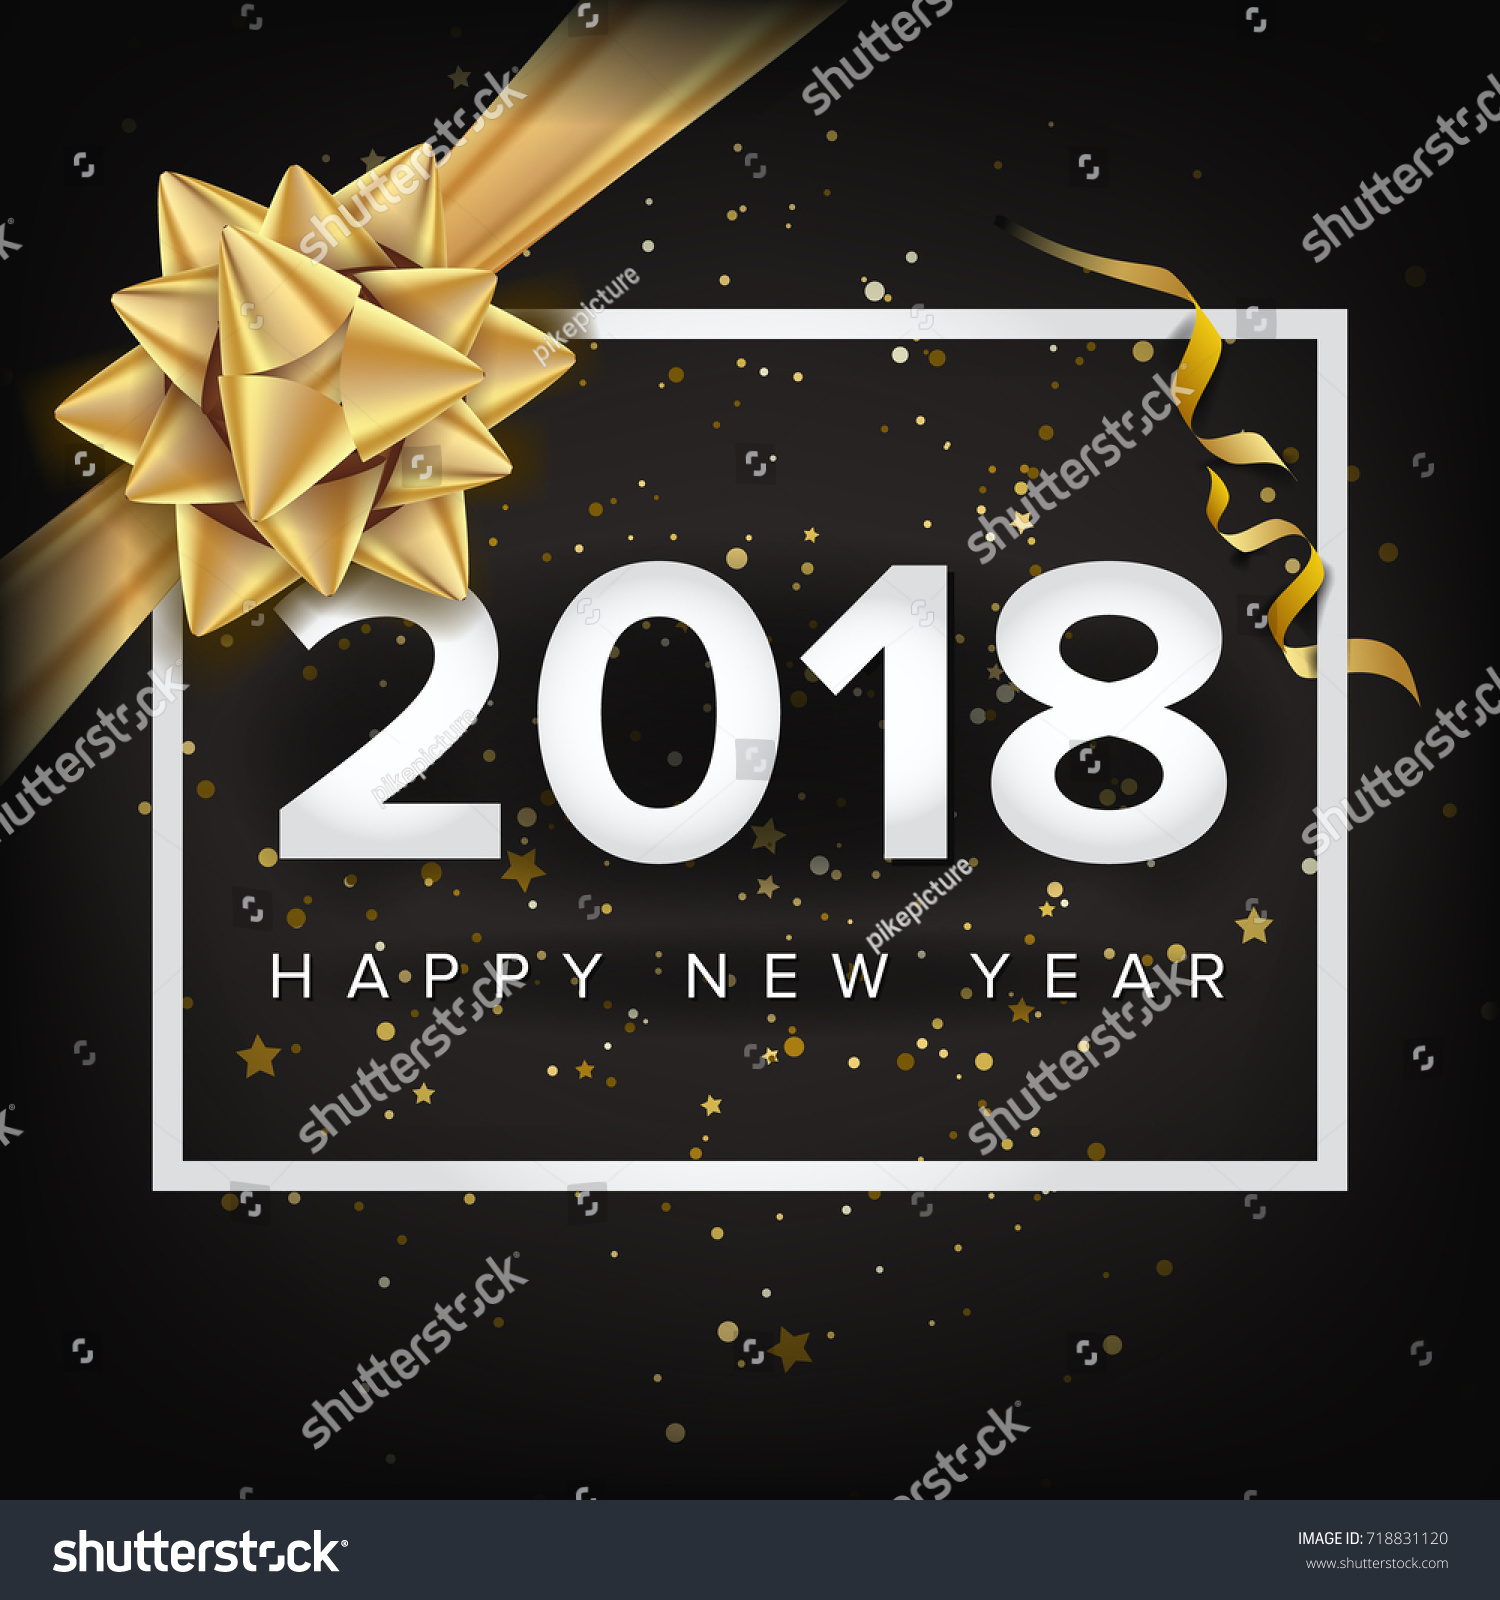 2018 Happy New Year. Christmas Greeting Card, Poster, Brochure, Flyer  Template Design